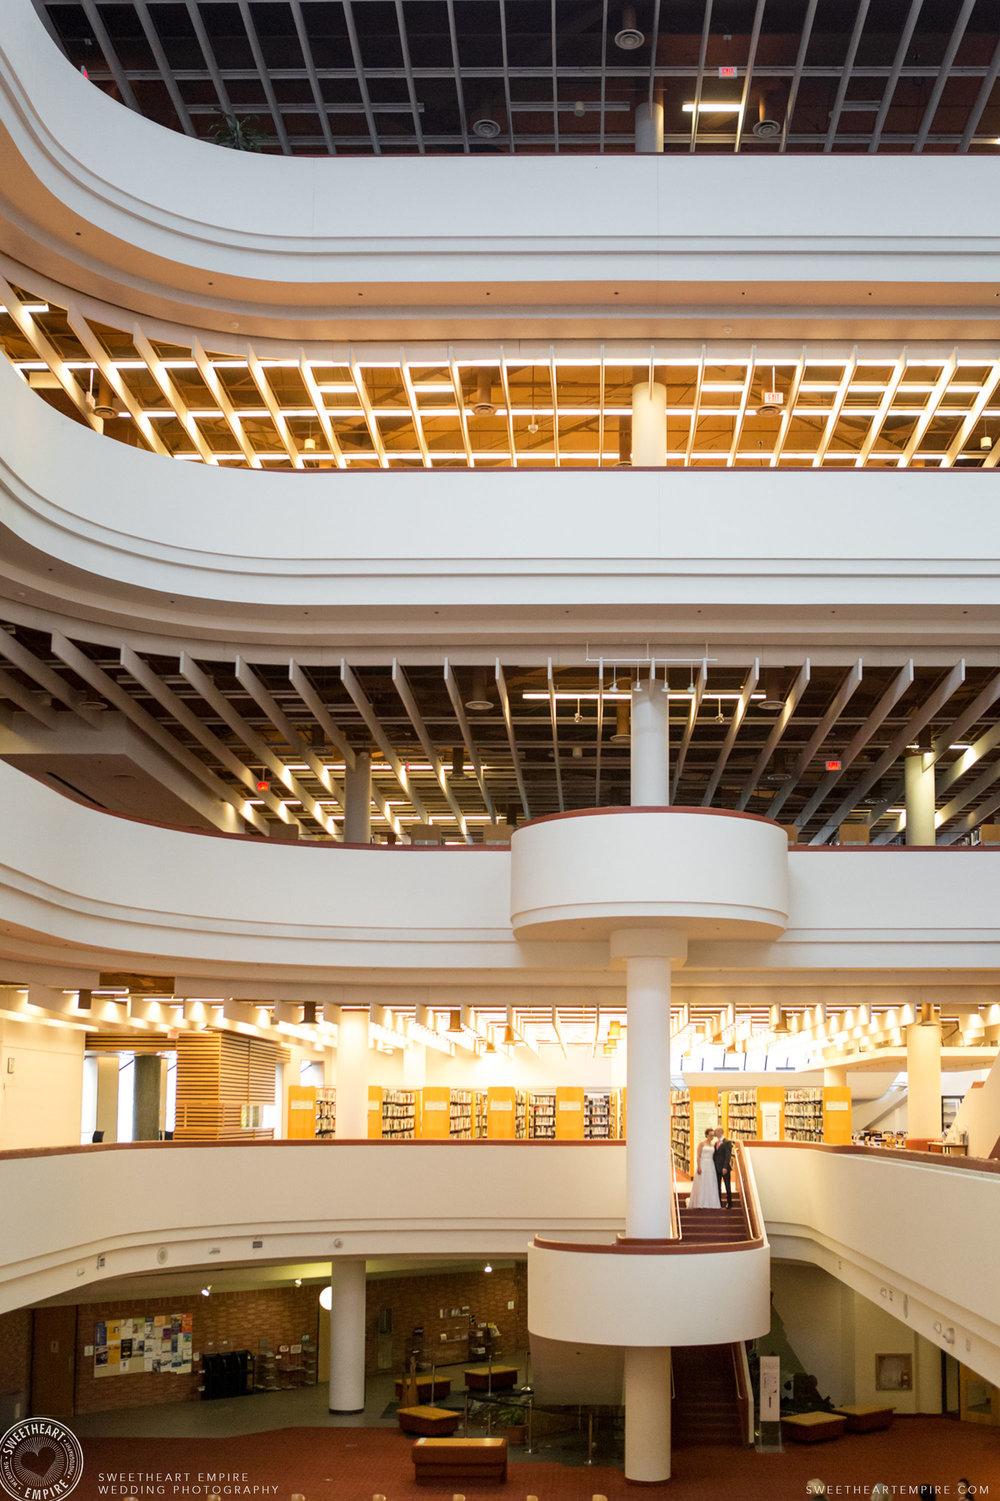 Stunning view of the Toronto Reference Library